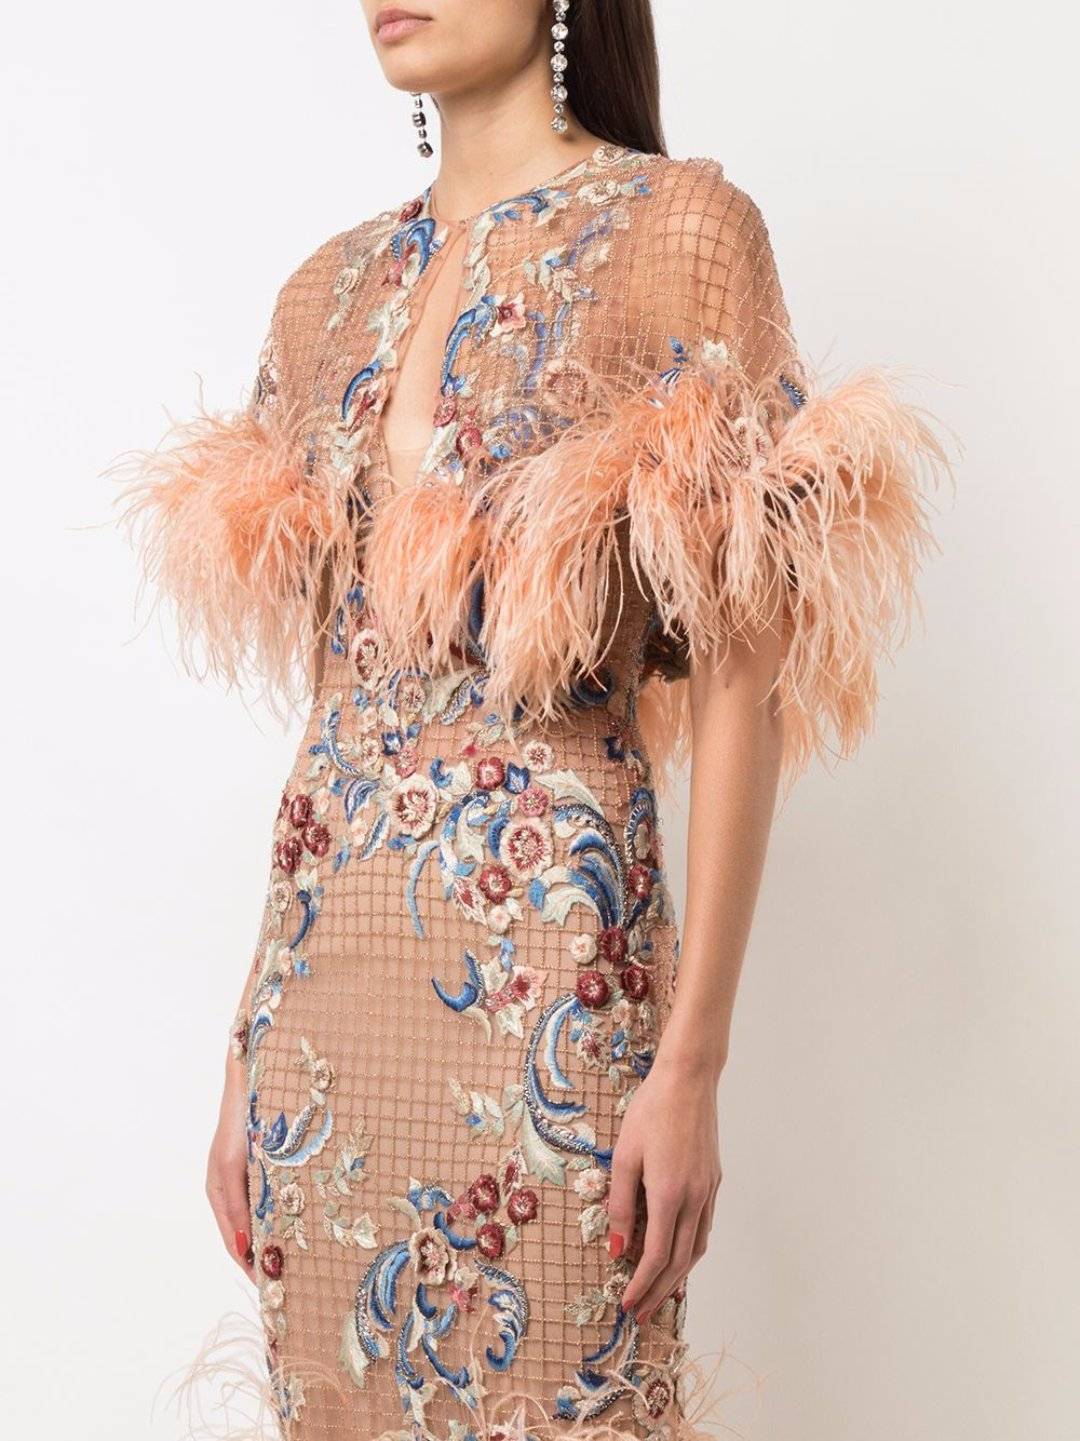 Capelet With Feathers